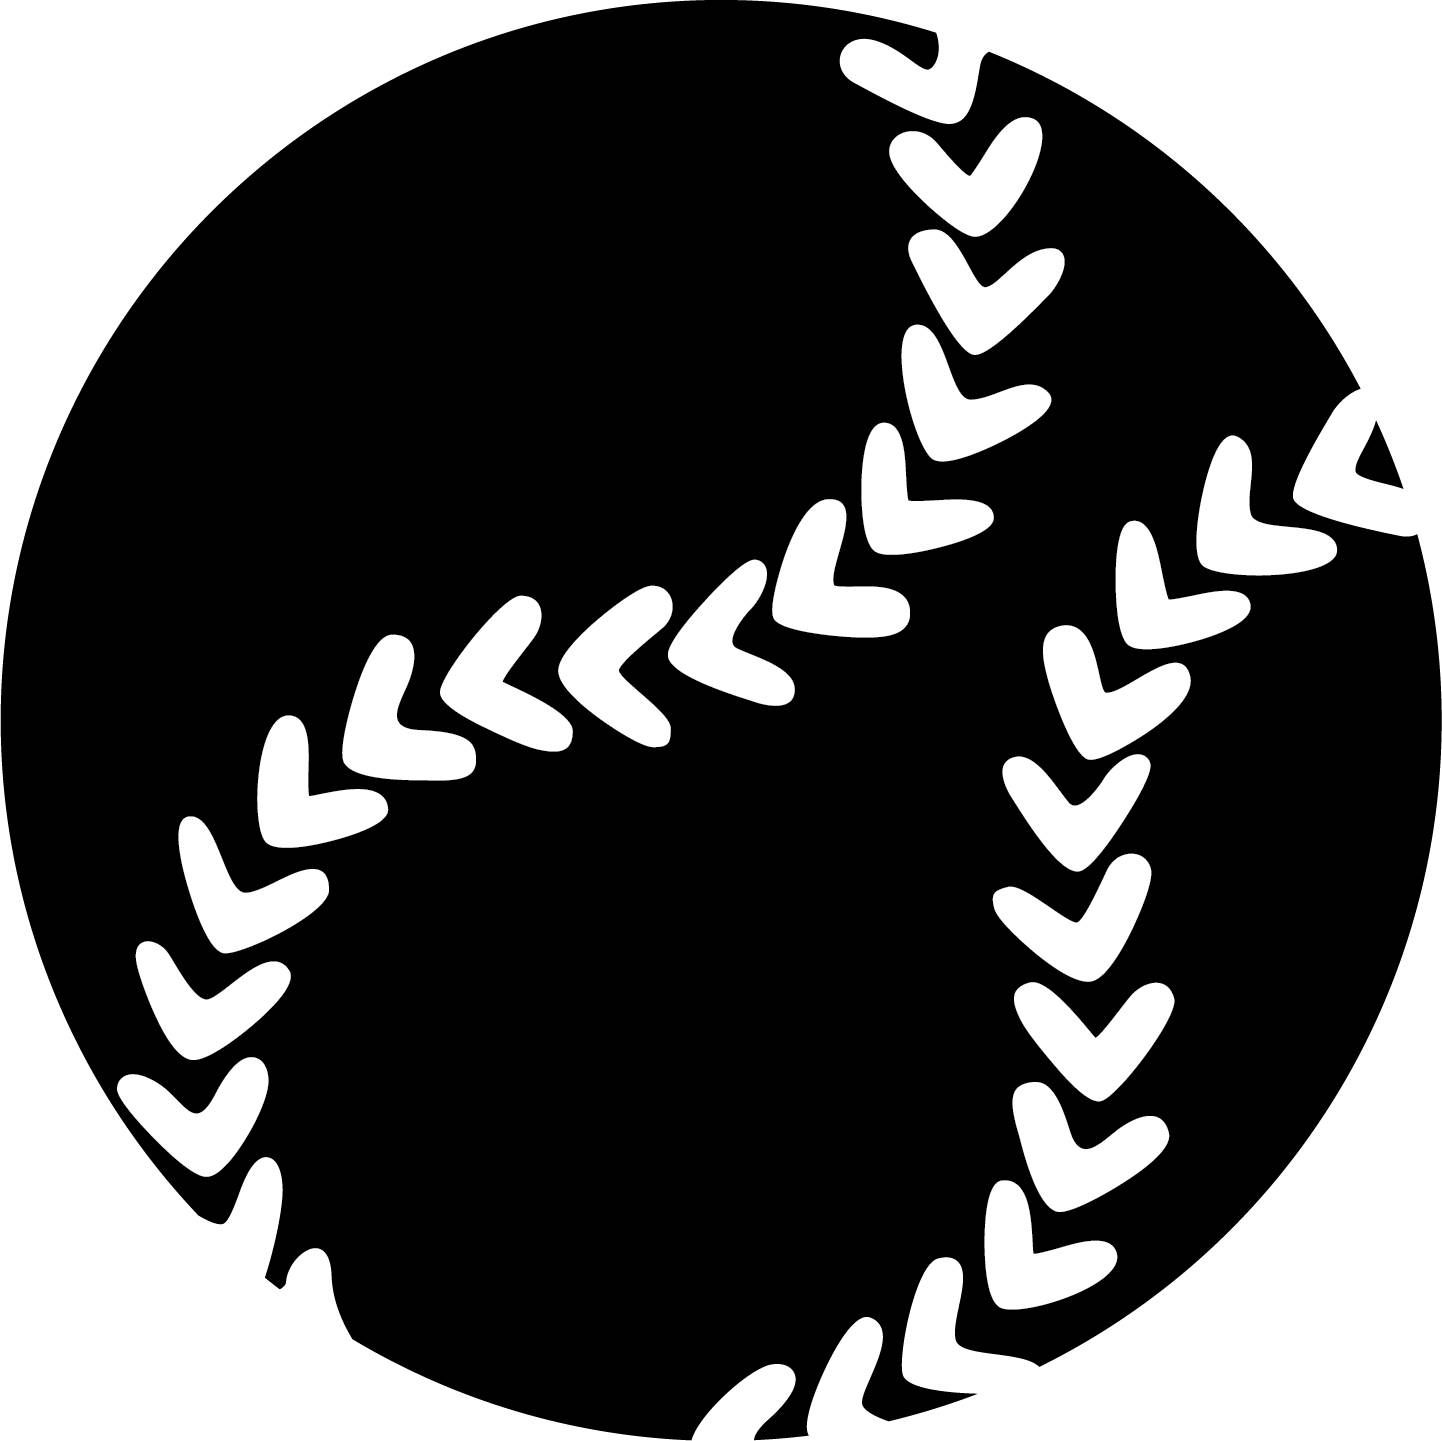 hight resolution of softball ai eps jpg png and svg clipart vinyl stencil cricut silhouette cameo by riasdigitaldesigns on etsy